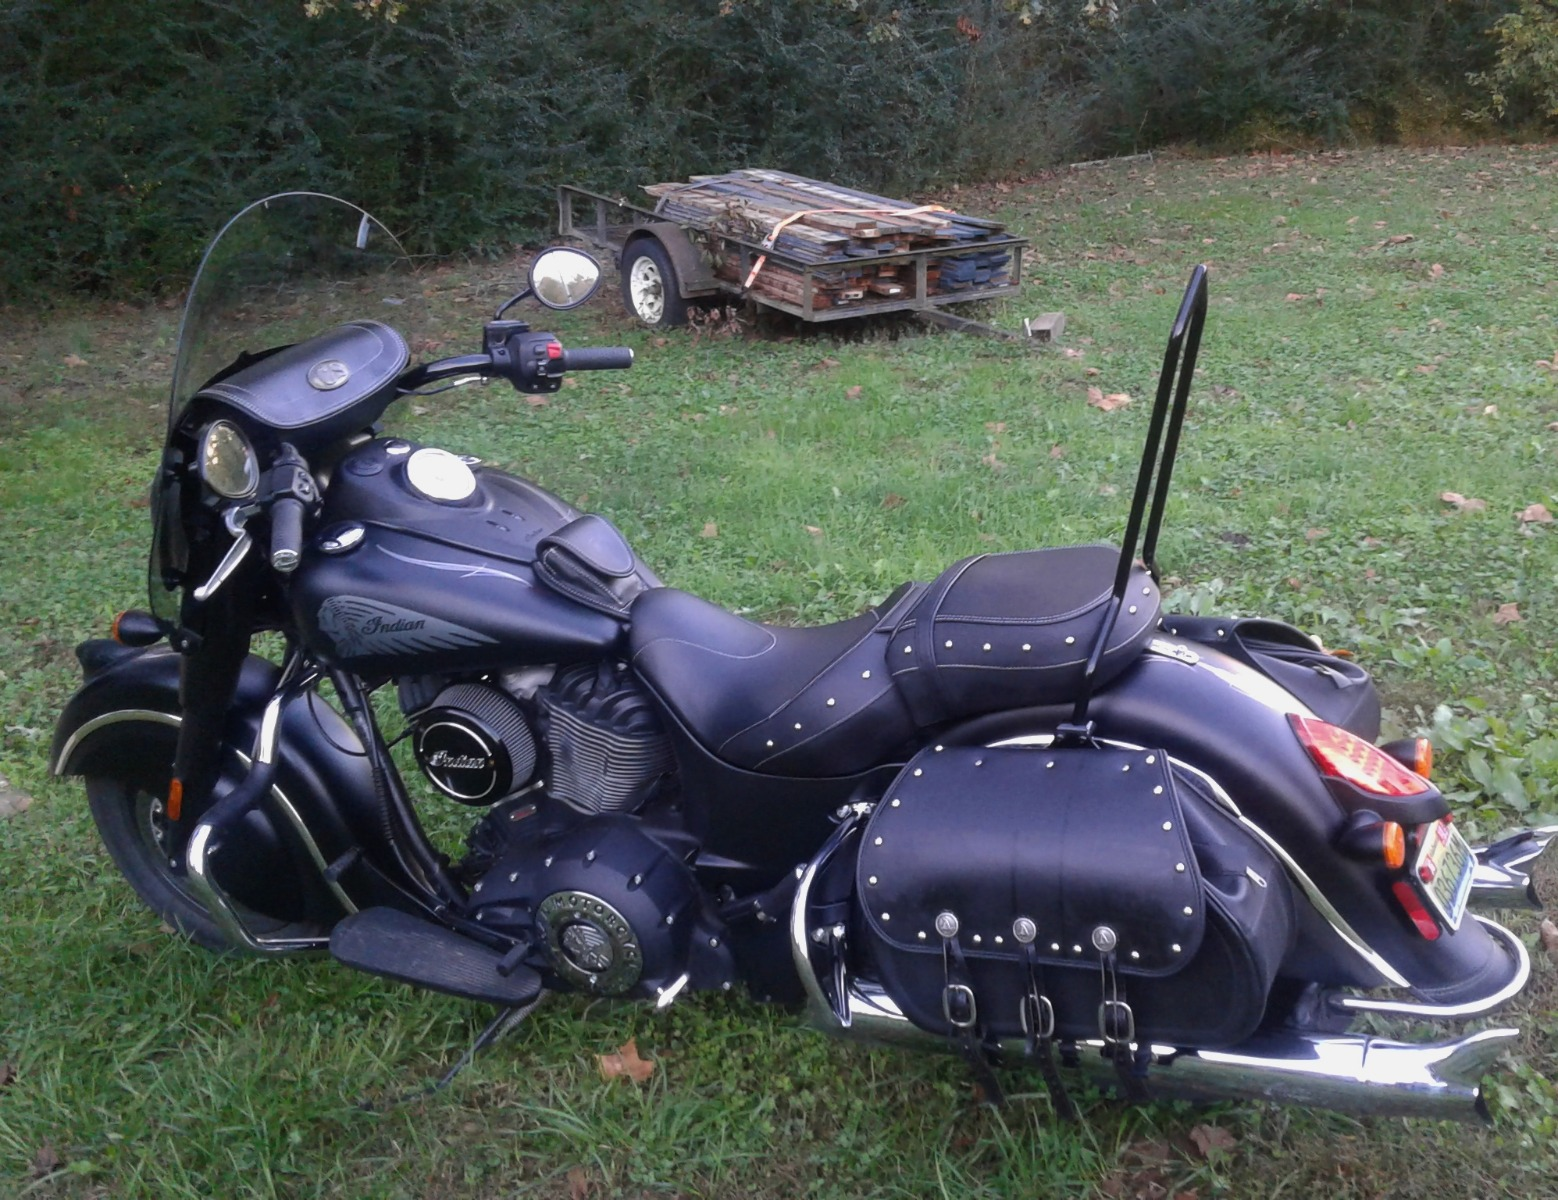 Indian Chief Dark Horse with Ginz Choppers sissy bar